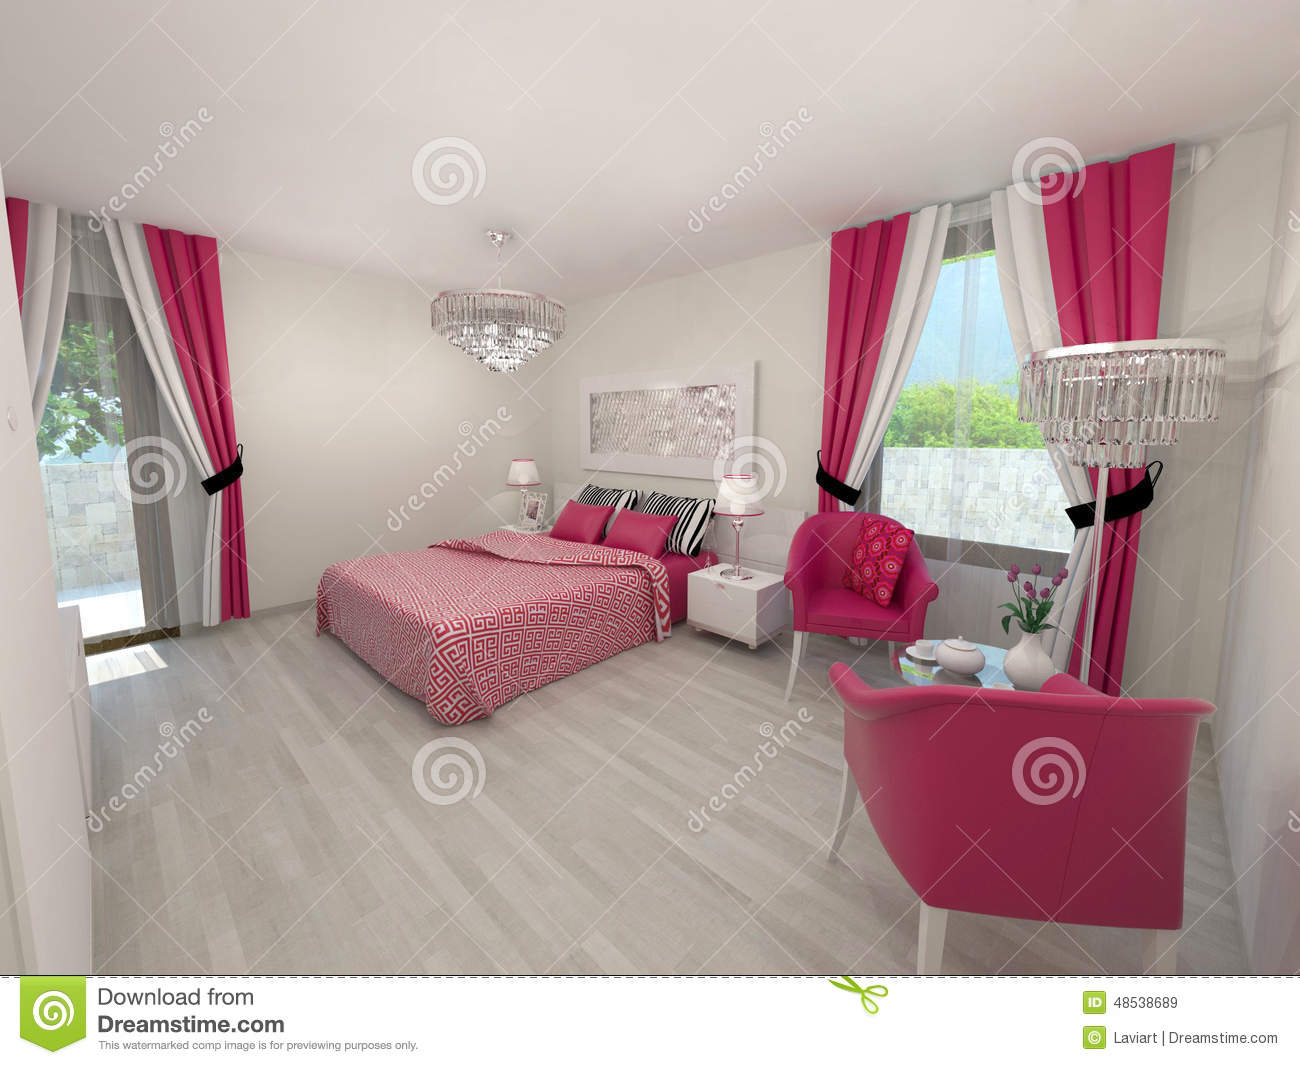 Chambre a coucher rose pr l vement d for Idee chambre a coucher moderne